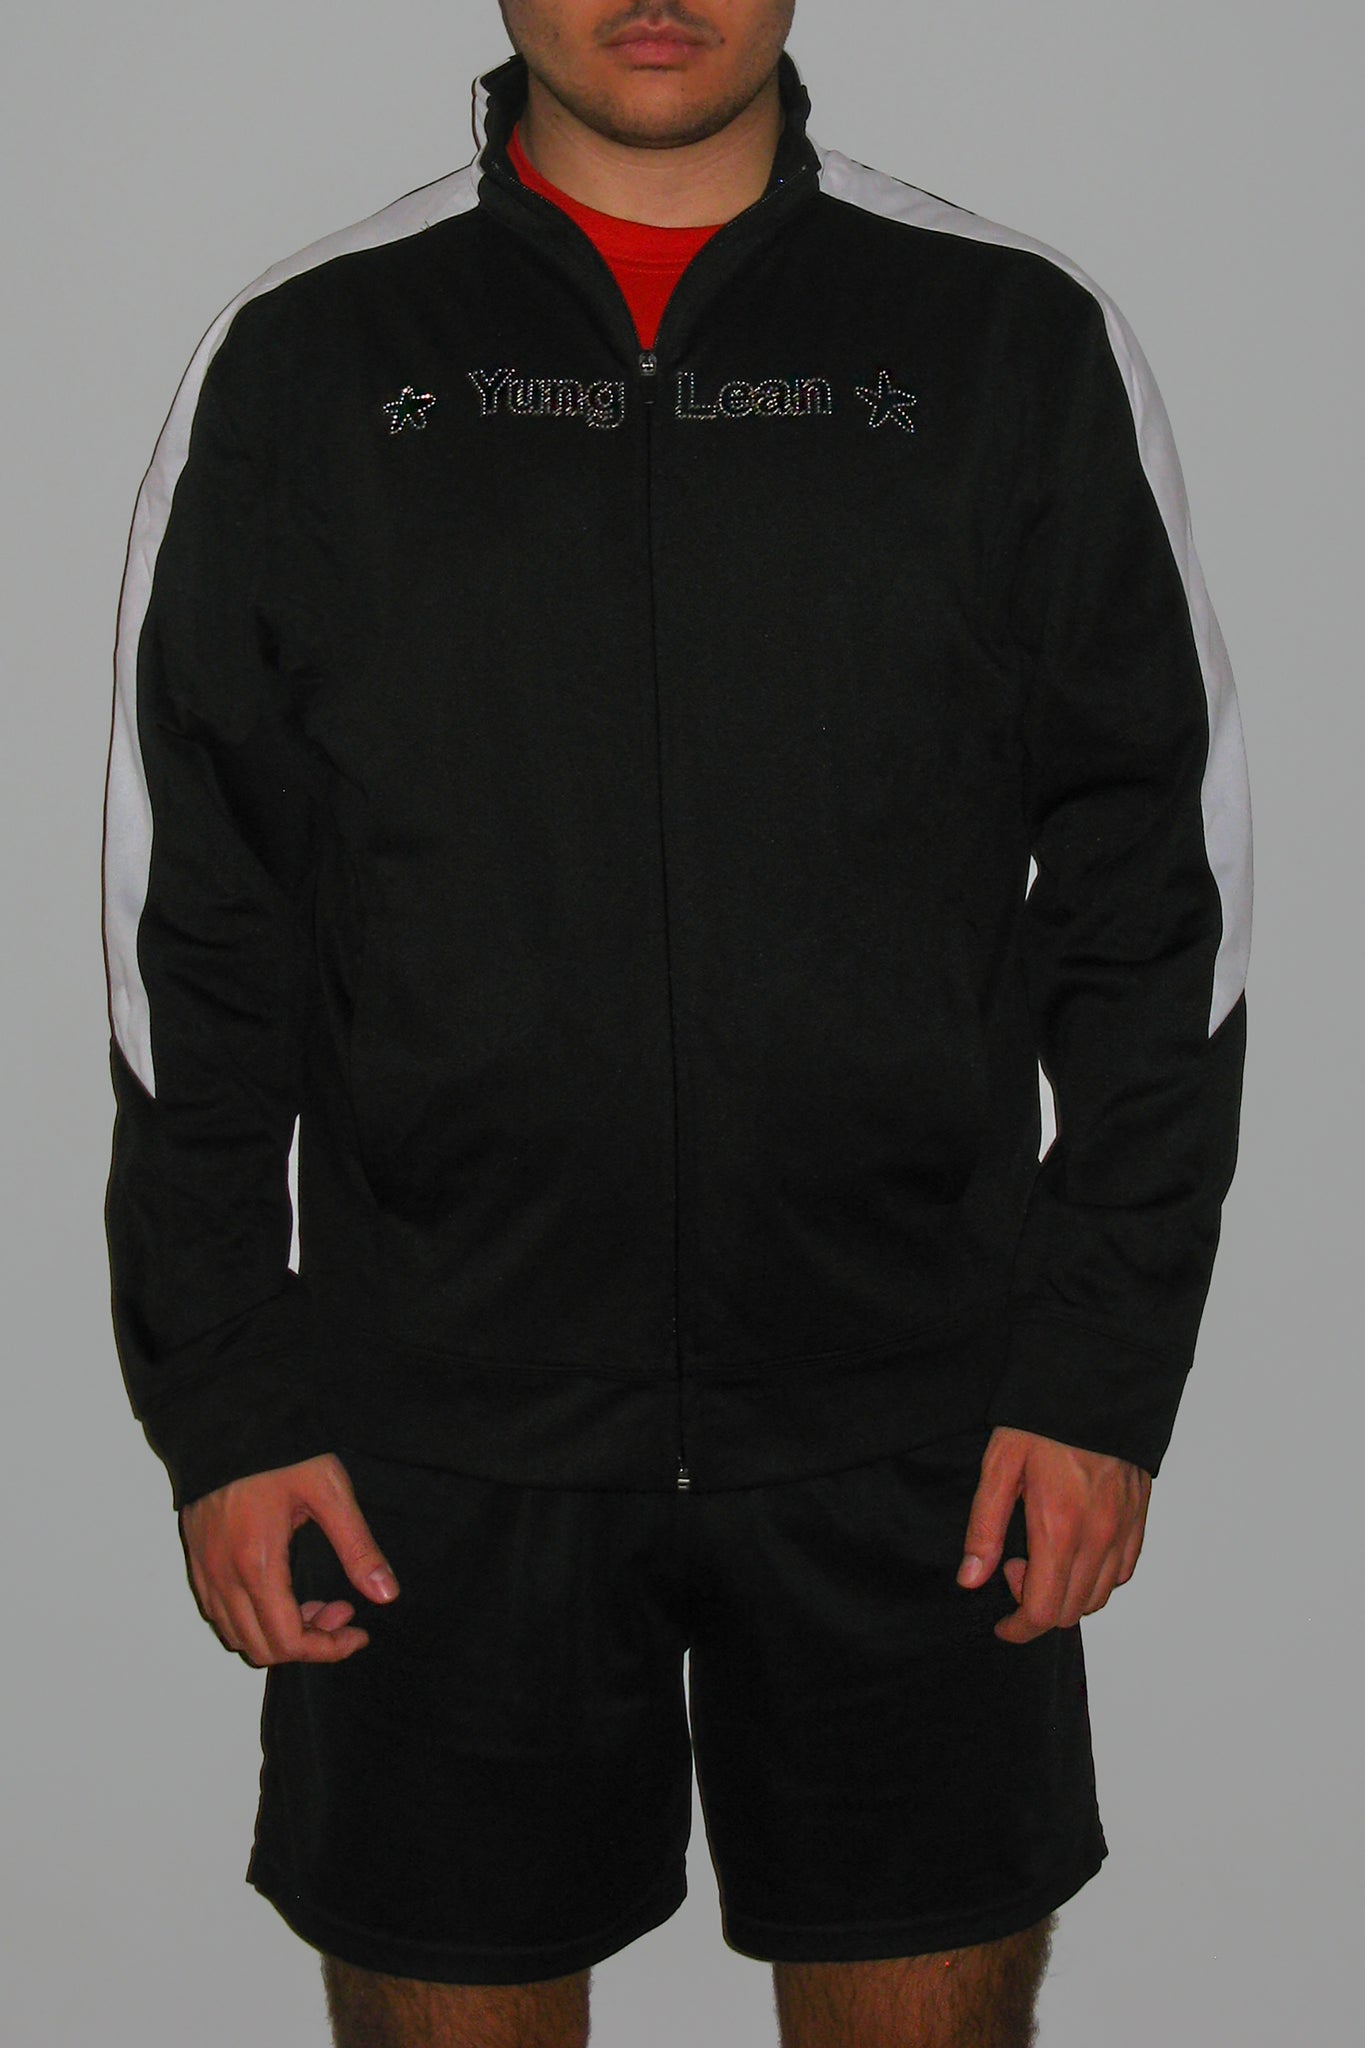 STARZ TRACK TOP (BLACK & WHITE)